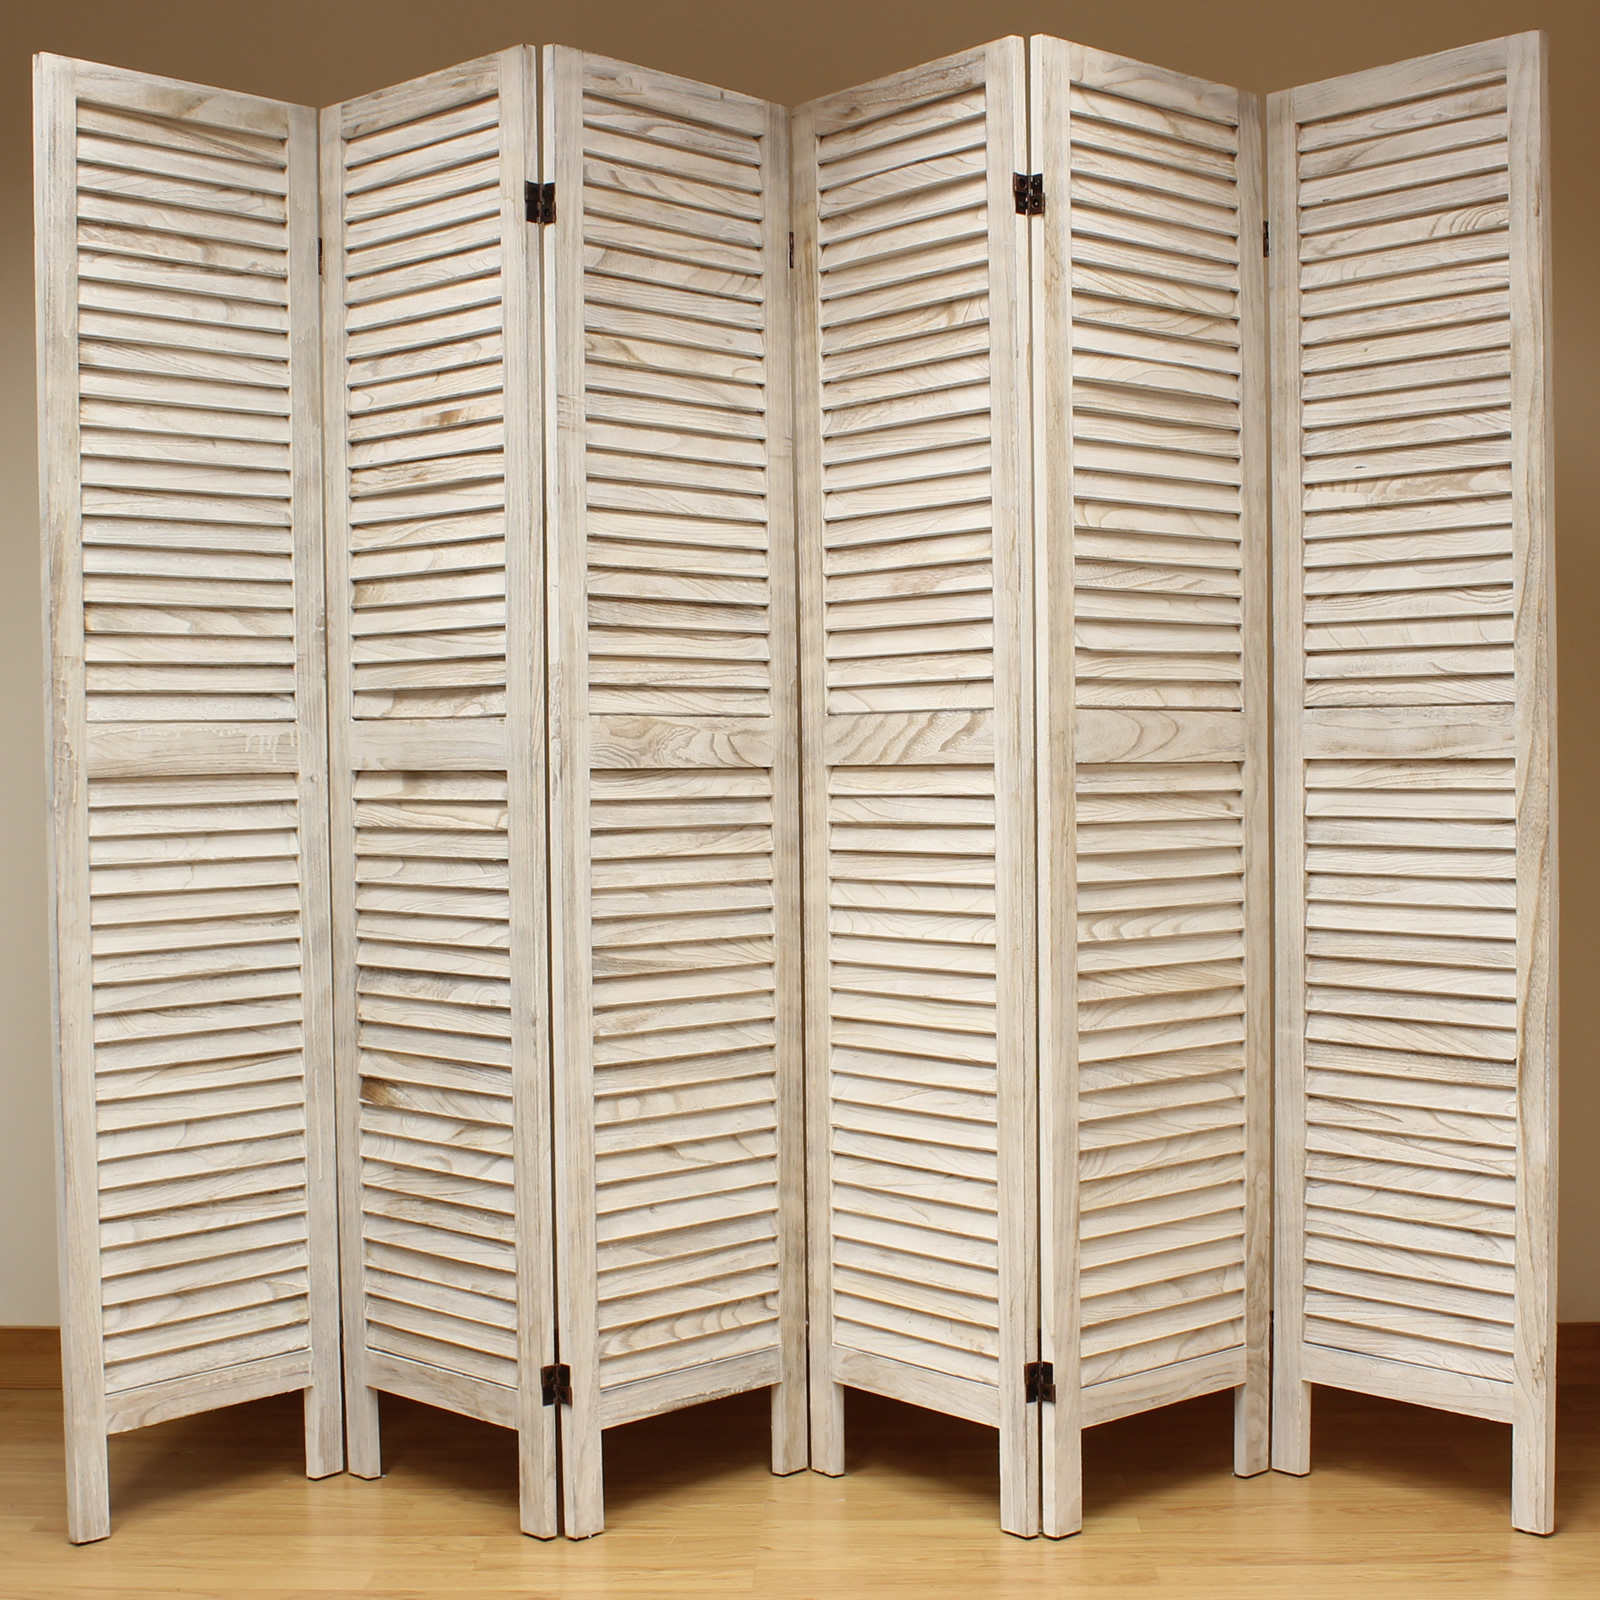 Cream 6 Panel Wooden Slat Room Divider Home Privacy ScreenSeparator